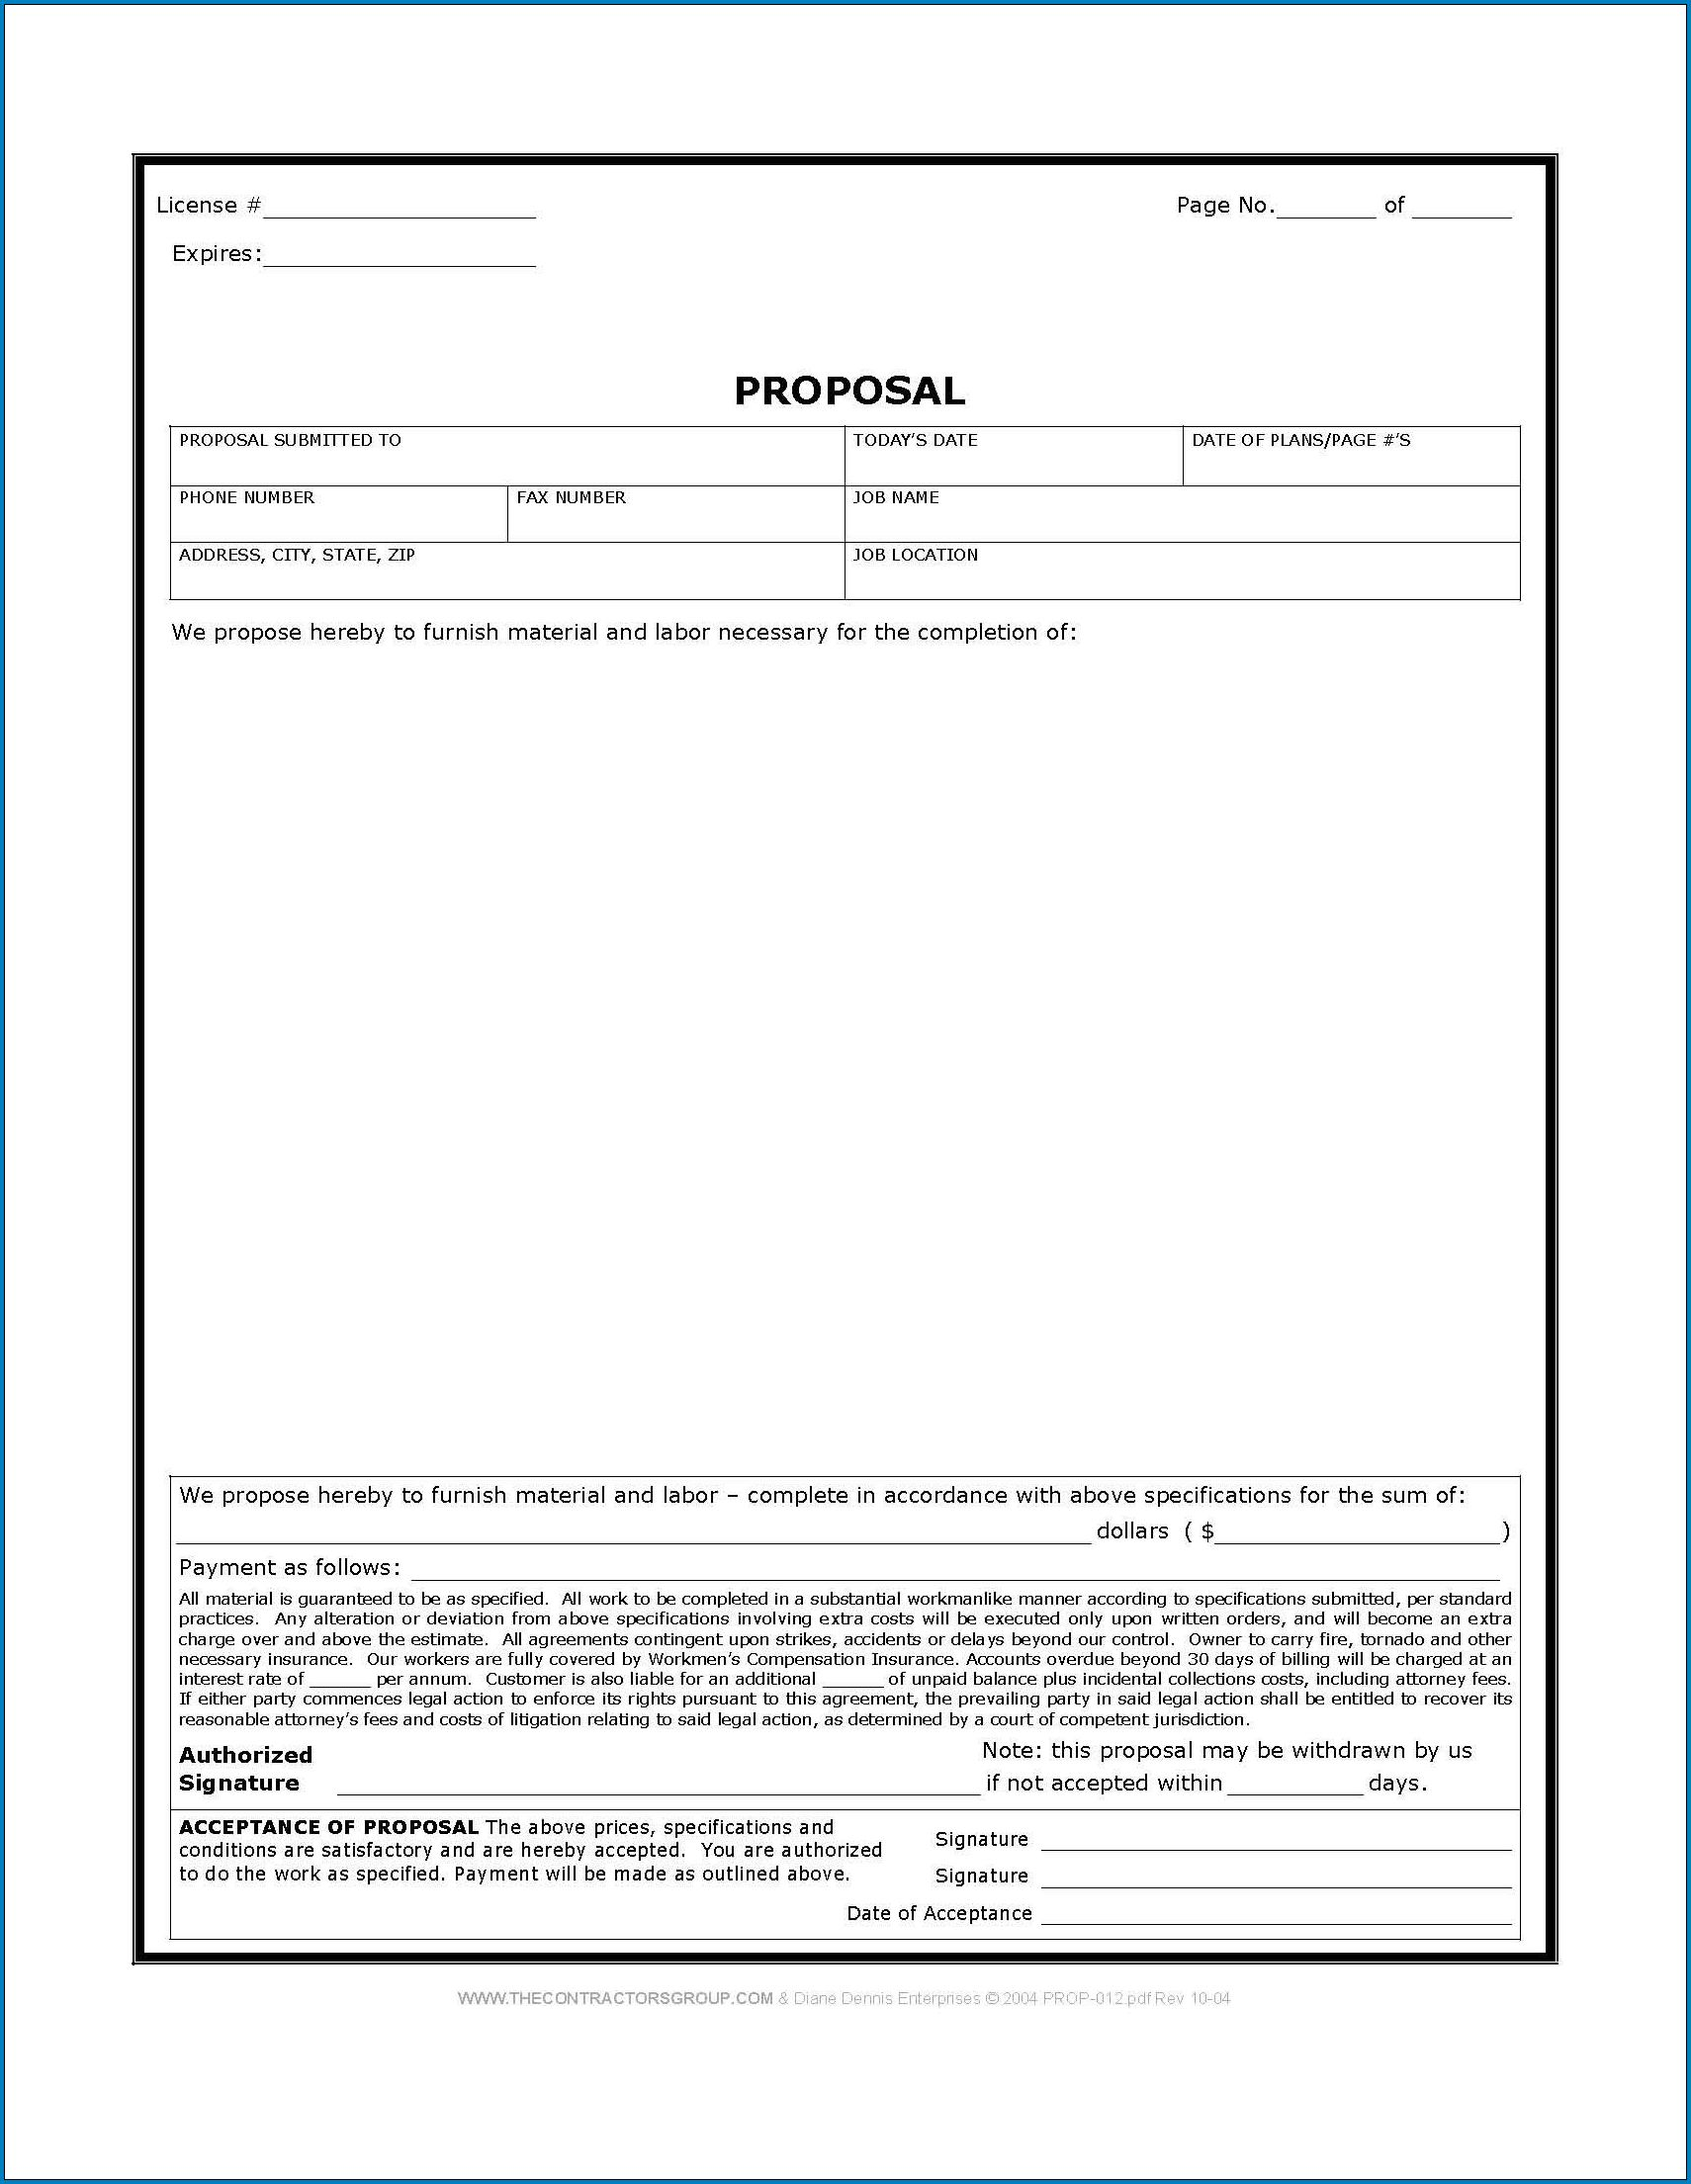 Sample of Contractor Proposal Form